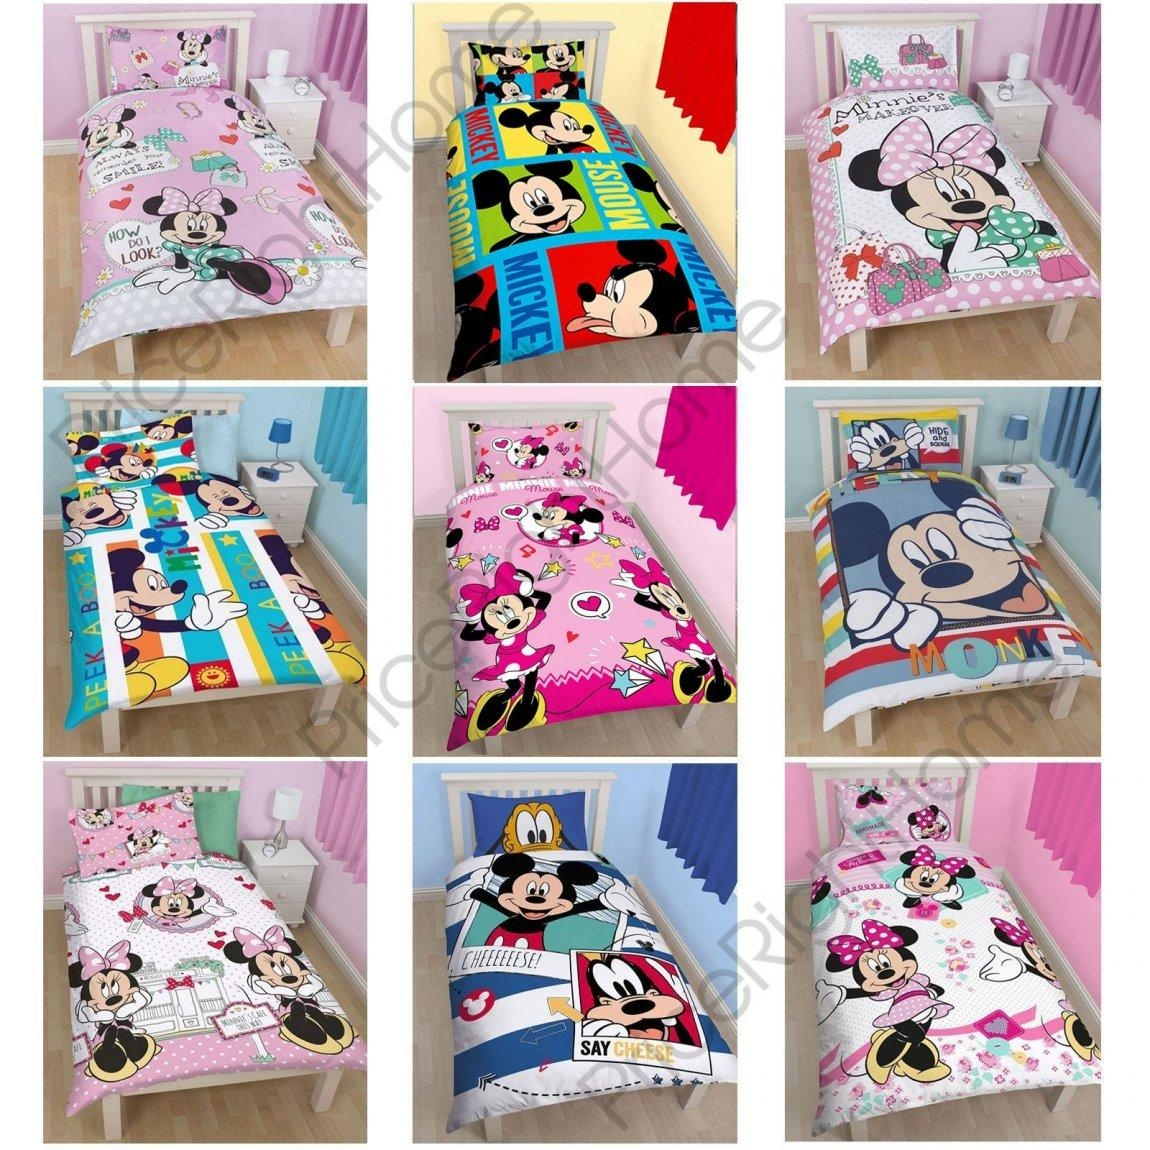 Minnie Mouse Quilt Bedroom Inspired Flannel Sheets Mickey Intended For Burlington Coat Factory Wall Art (Image 17 of 20)